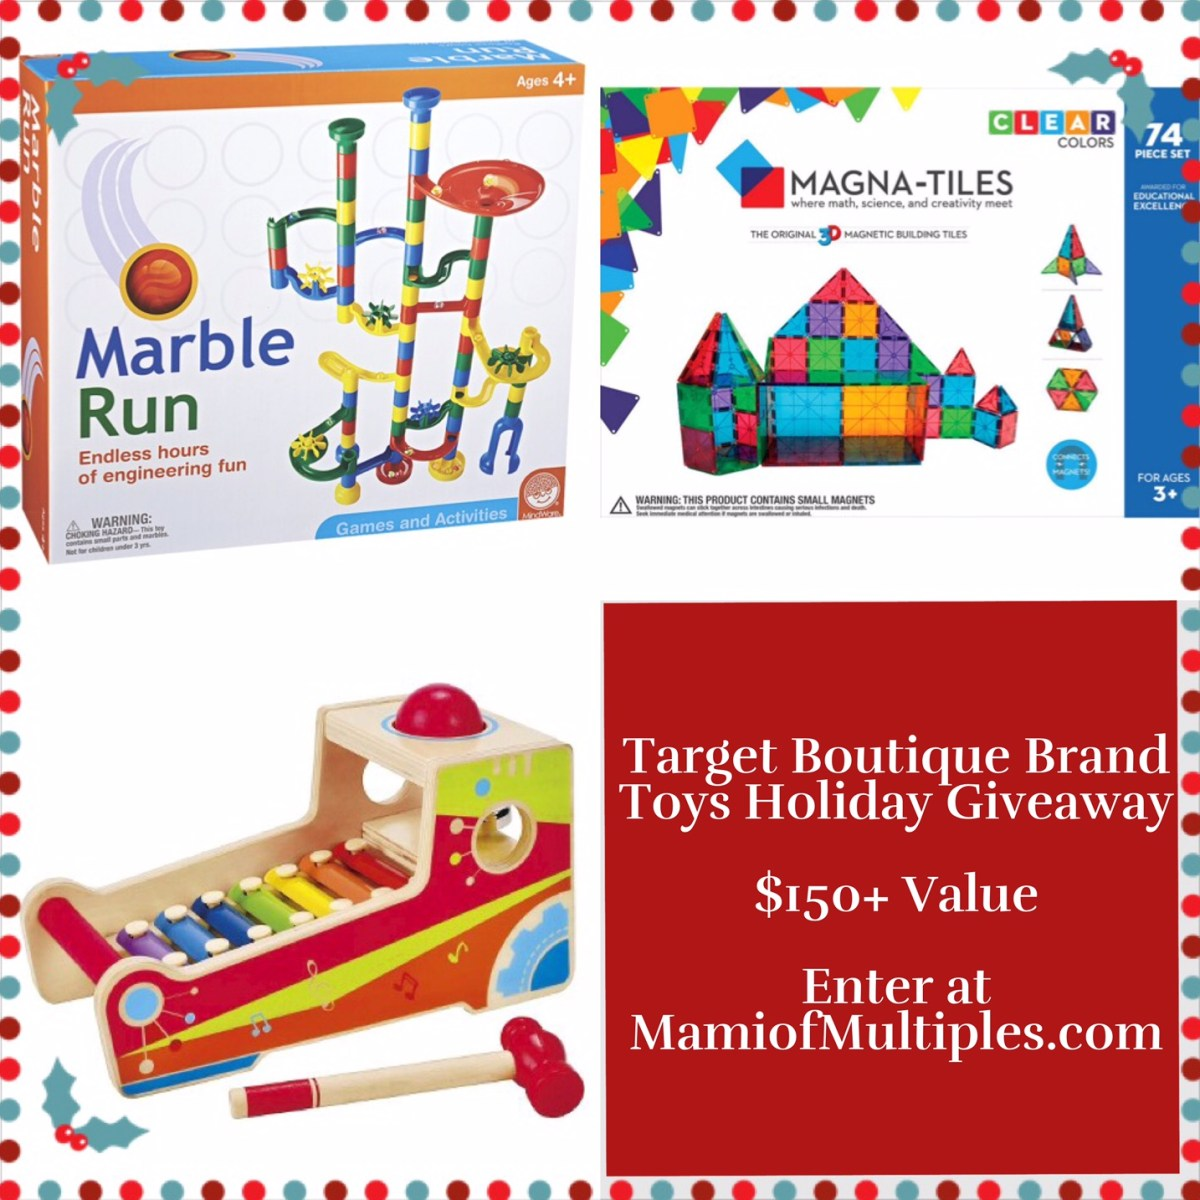 Target Boutique Brand Toys Holiday Giveaway